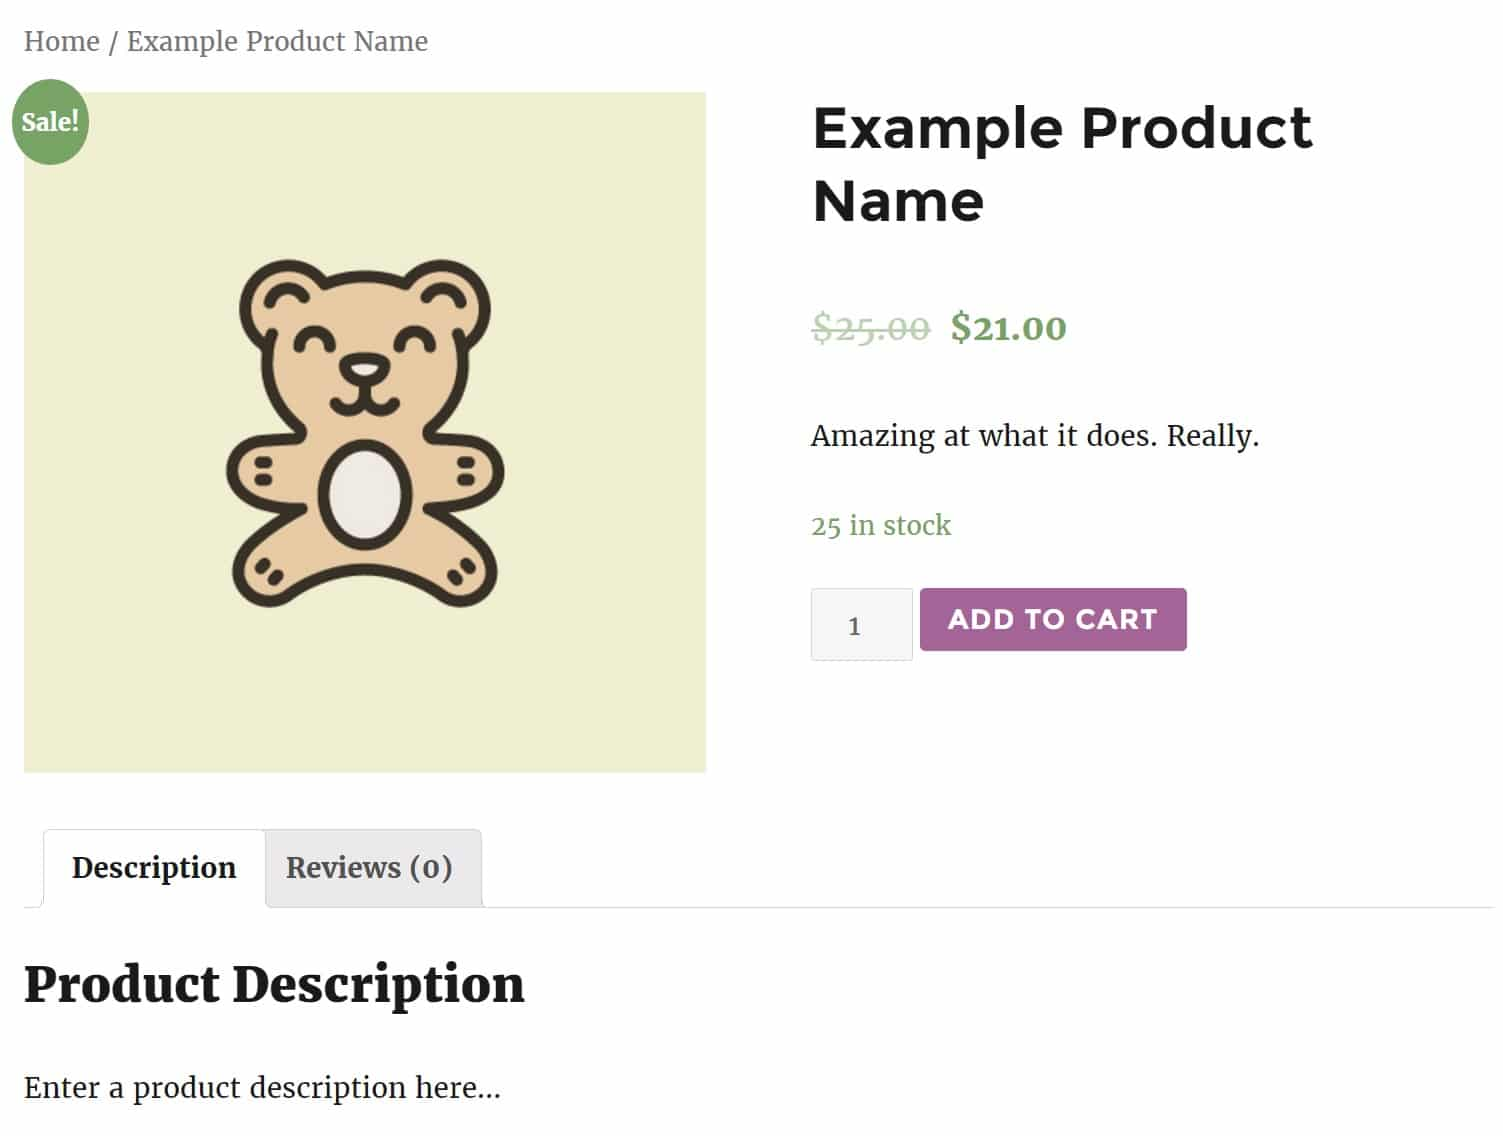 1554920033 6989 Sample Product Woocommerce